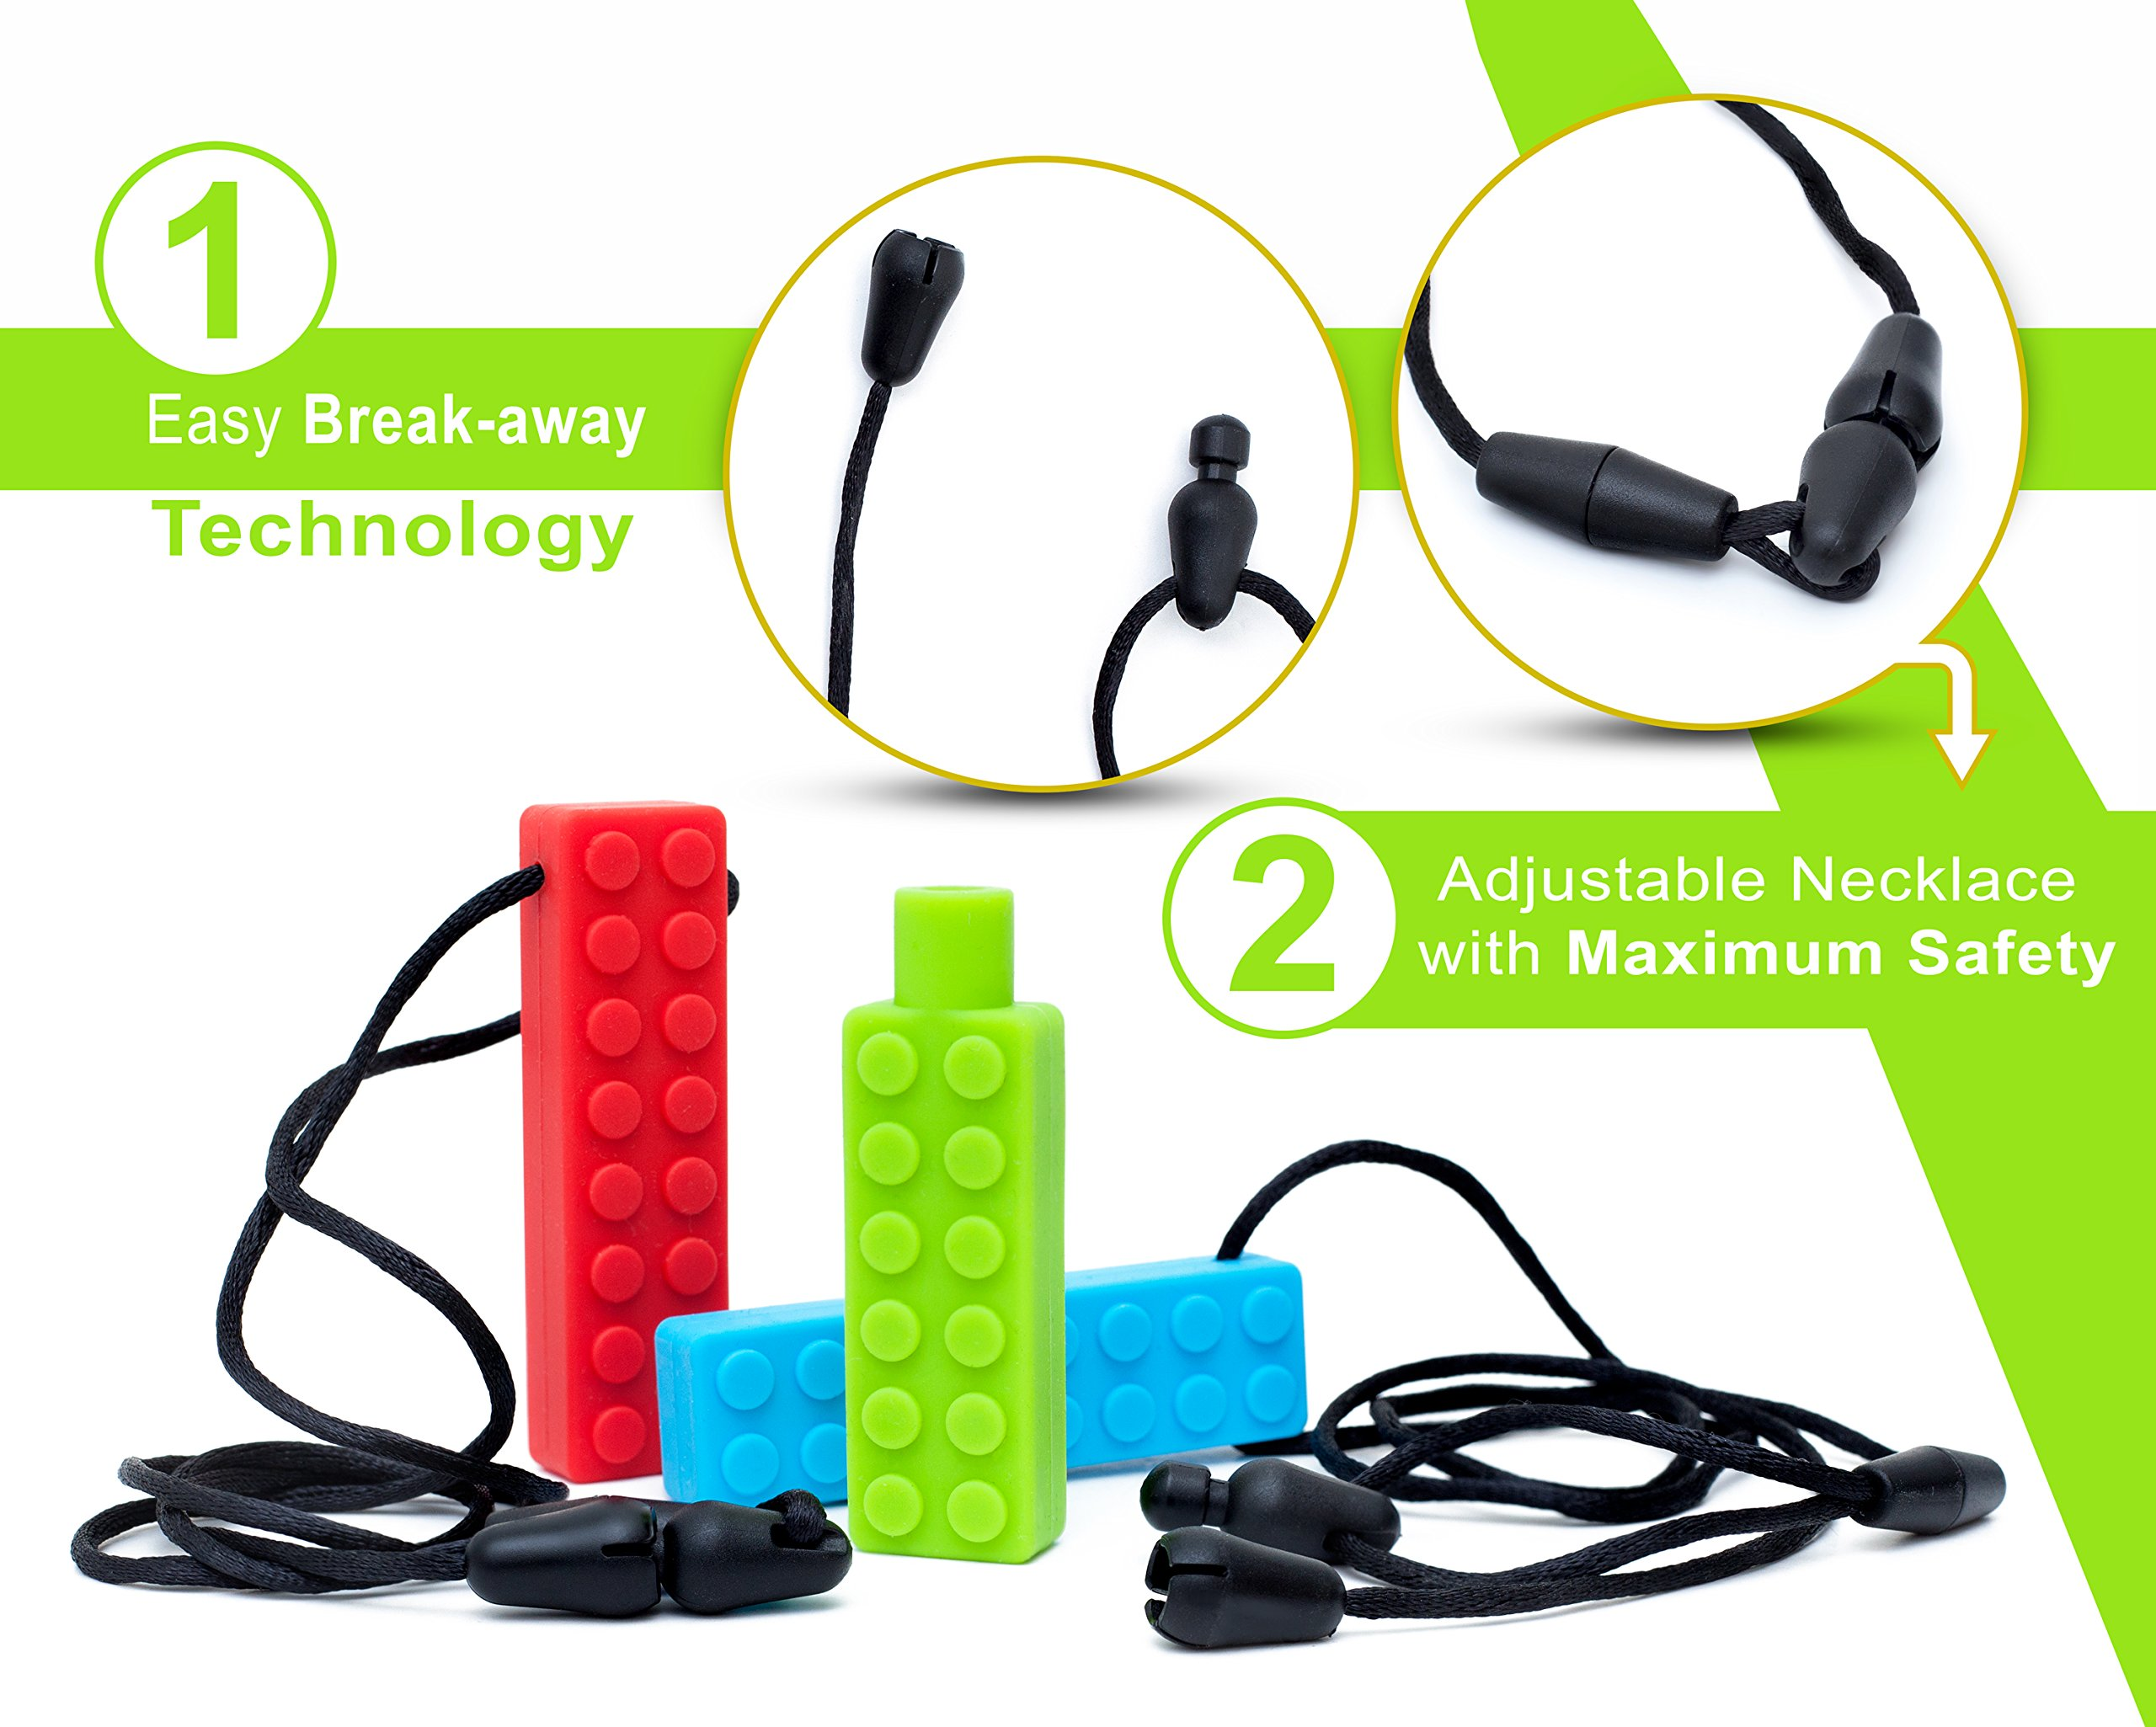 Sensory Necklace (2 PACK + FREE PENCIL TOPPER) - Chewy Necklace - Sensory Chewelry for Kids with Autism ADHD Biting Needs - Chew Toy for Boys and Girls - MORE FIRM by Optimum (Image #2)